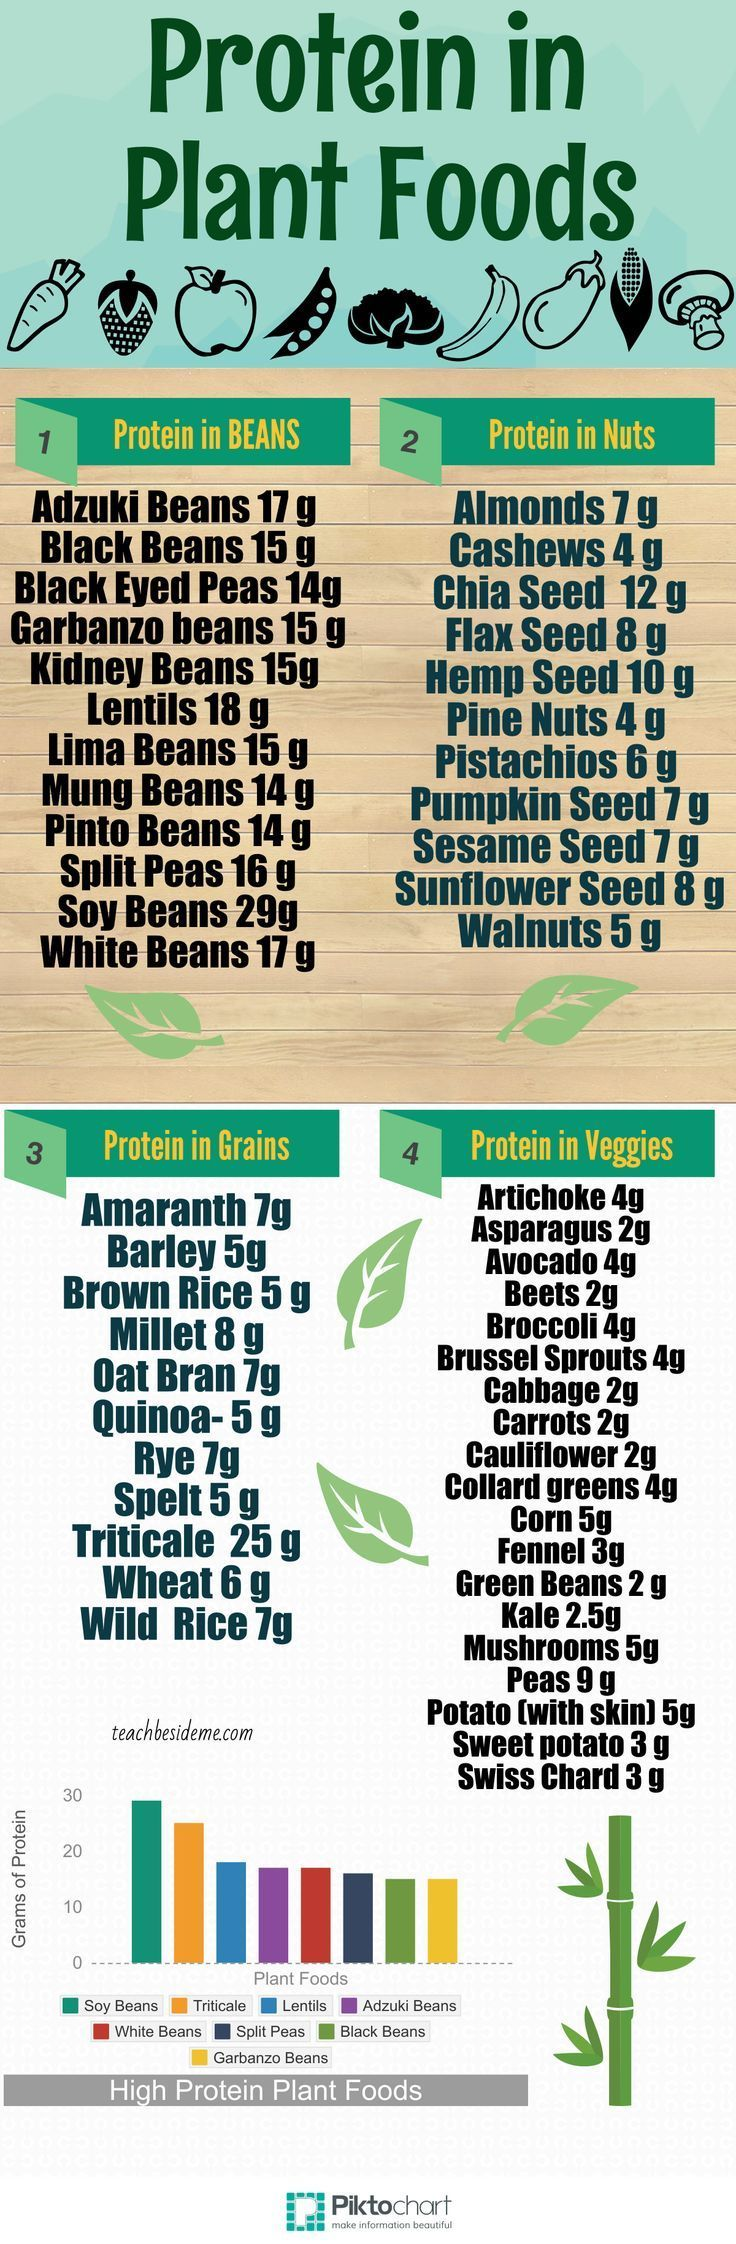 Protein in Plant Foods #health #nutrition #foodfacts https://www.genetichealthplan.com/